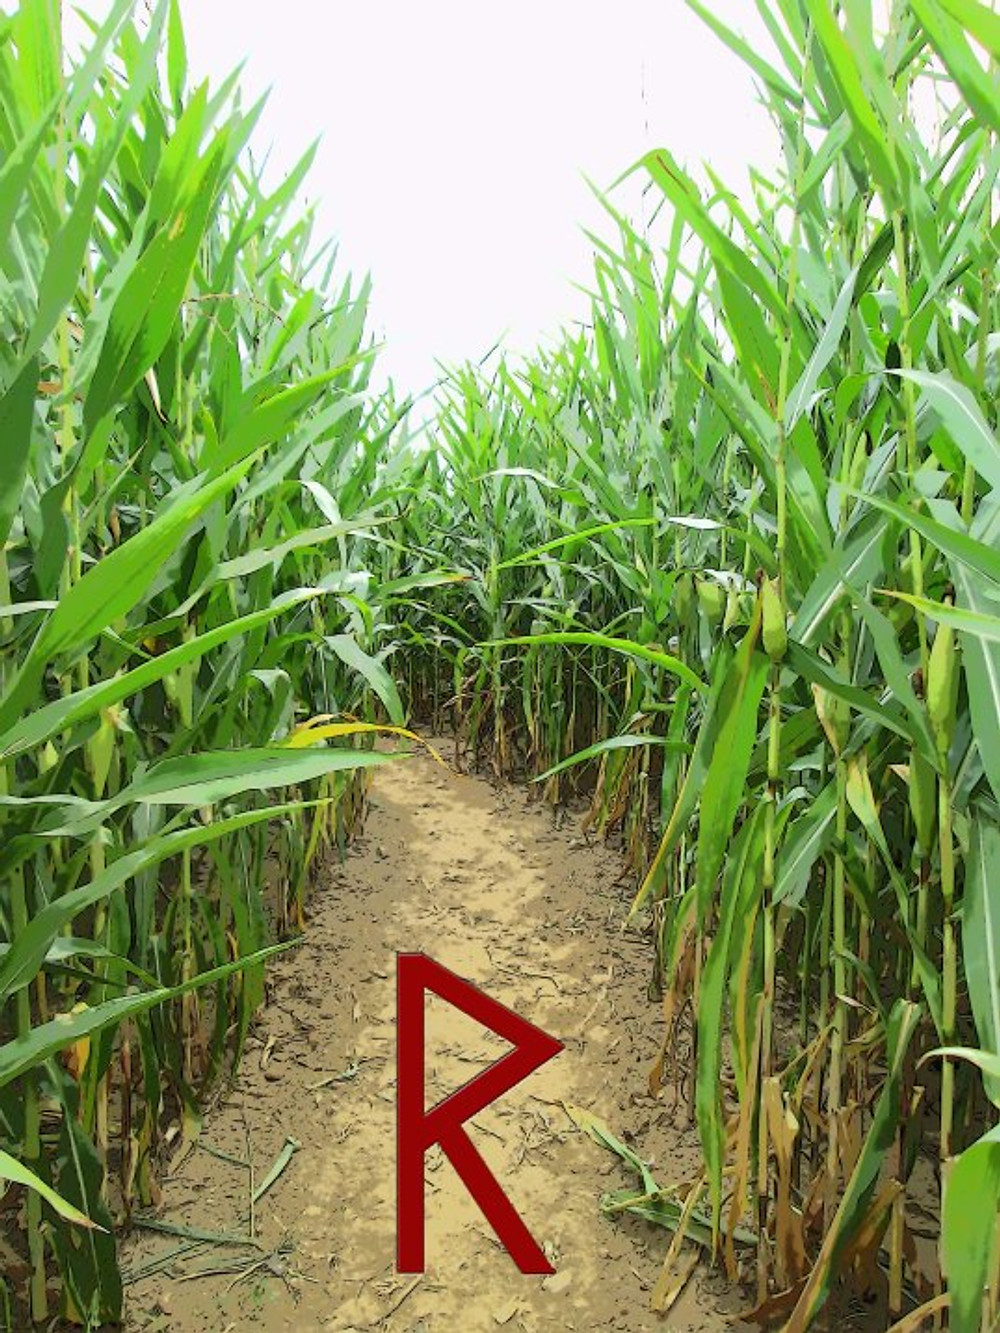 Sometimes, life feels like a corn maze where the walls of experience twist and turn, making it difficult to see the path ahead. Am I doing the right thing? Should I keep walking this way? Rad (Radio) is the Rune that helps us move forward in the right direction even though we are unsure of the way.